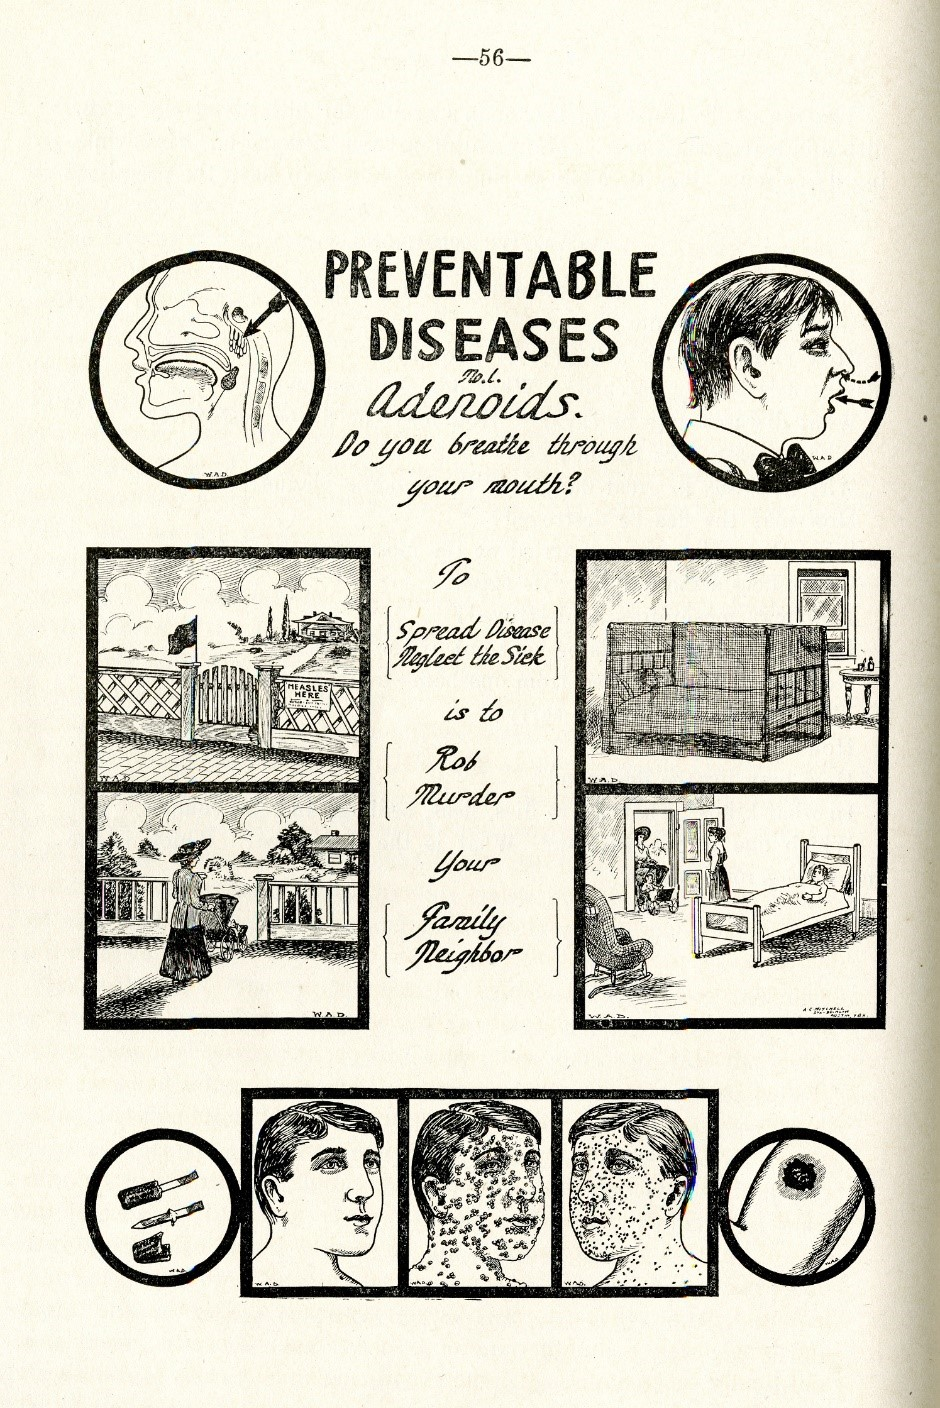 Publication from the Texas State Board of Health about preventing contagious diseases. Courtesy of the Rosenberg Library.